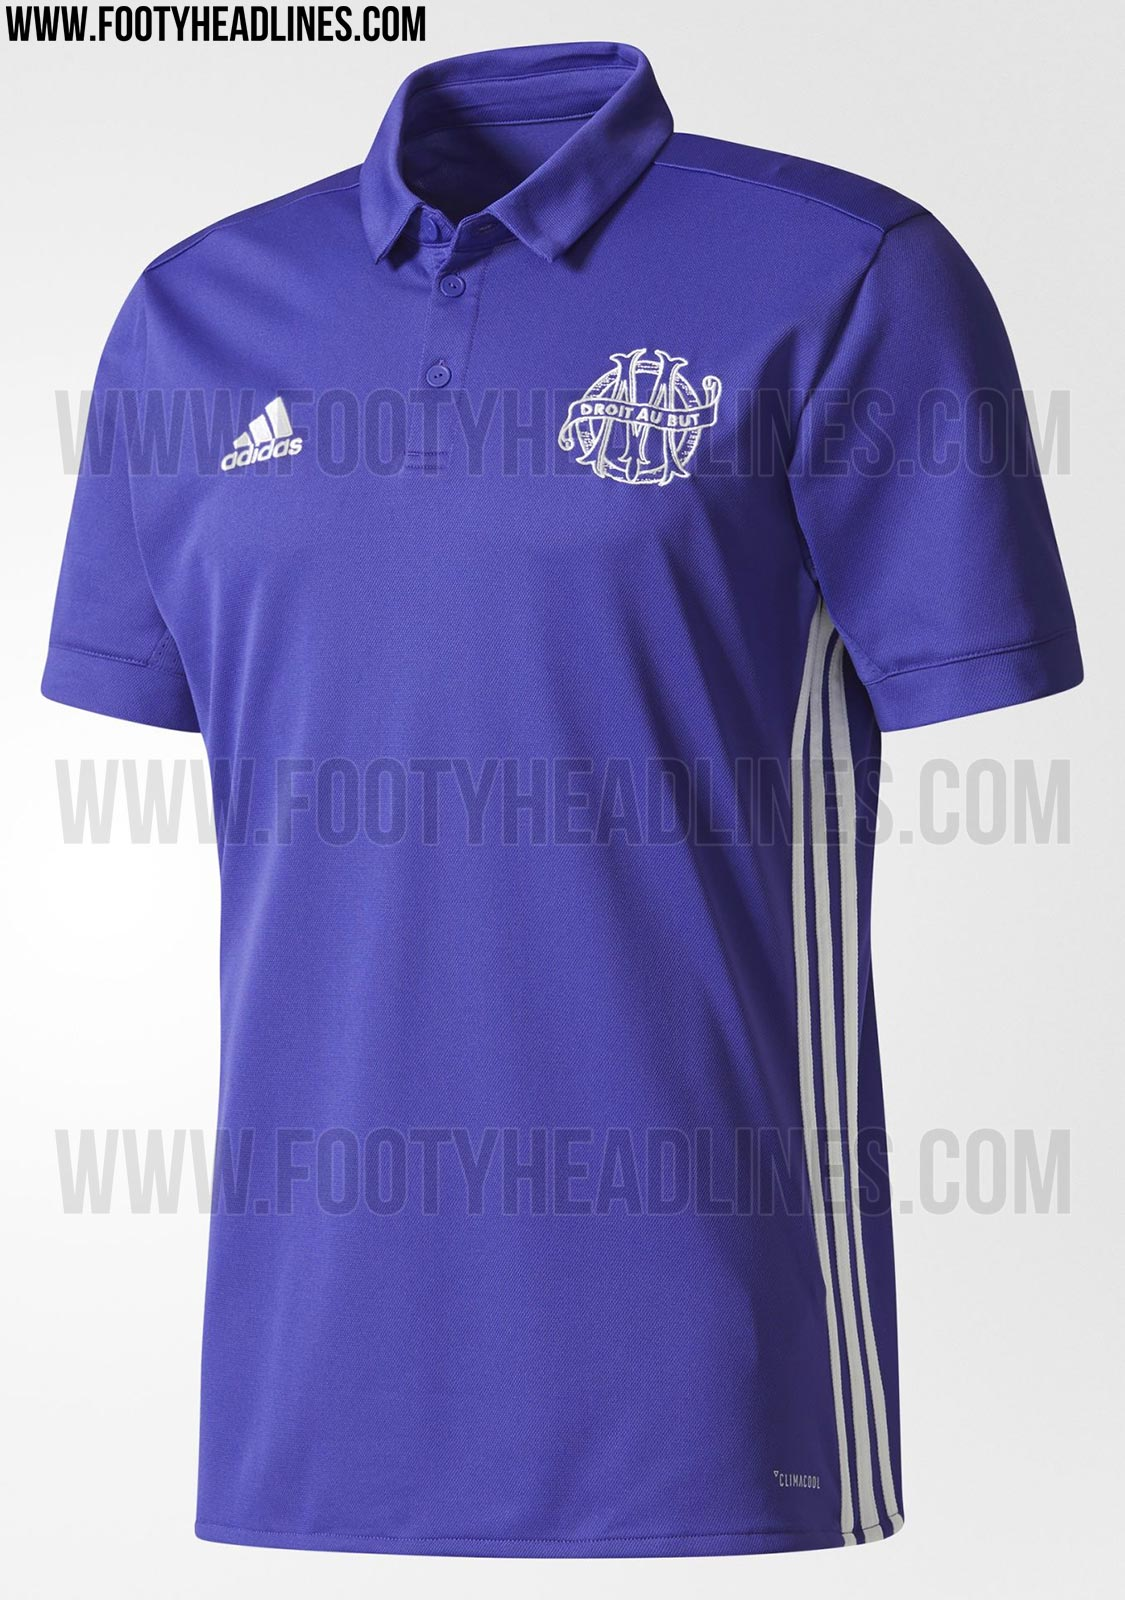 https://image.ibb.co/crdaWv/Olympique_Marseille_third_kit_1.jpg